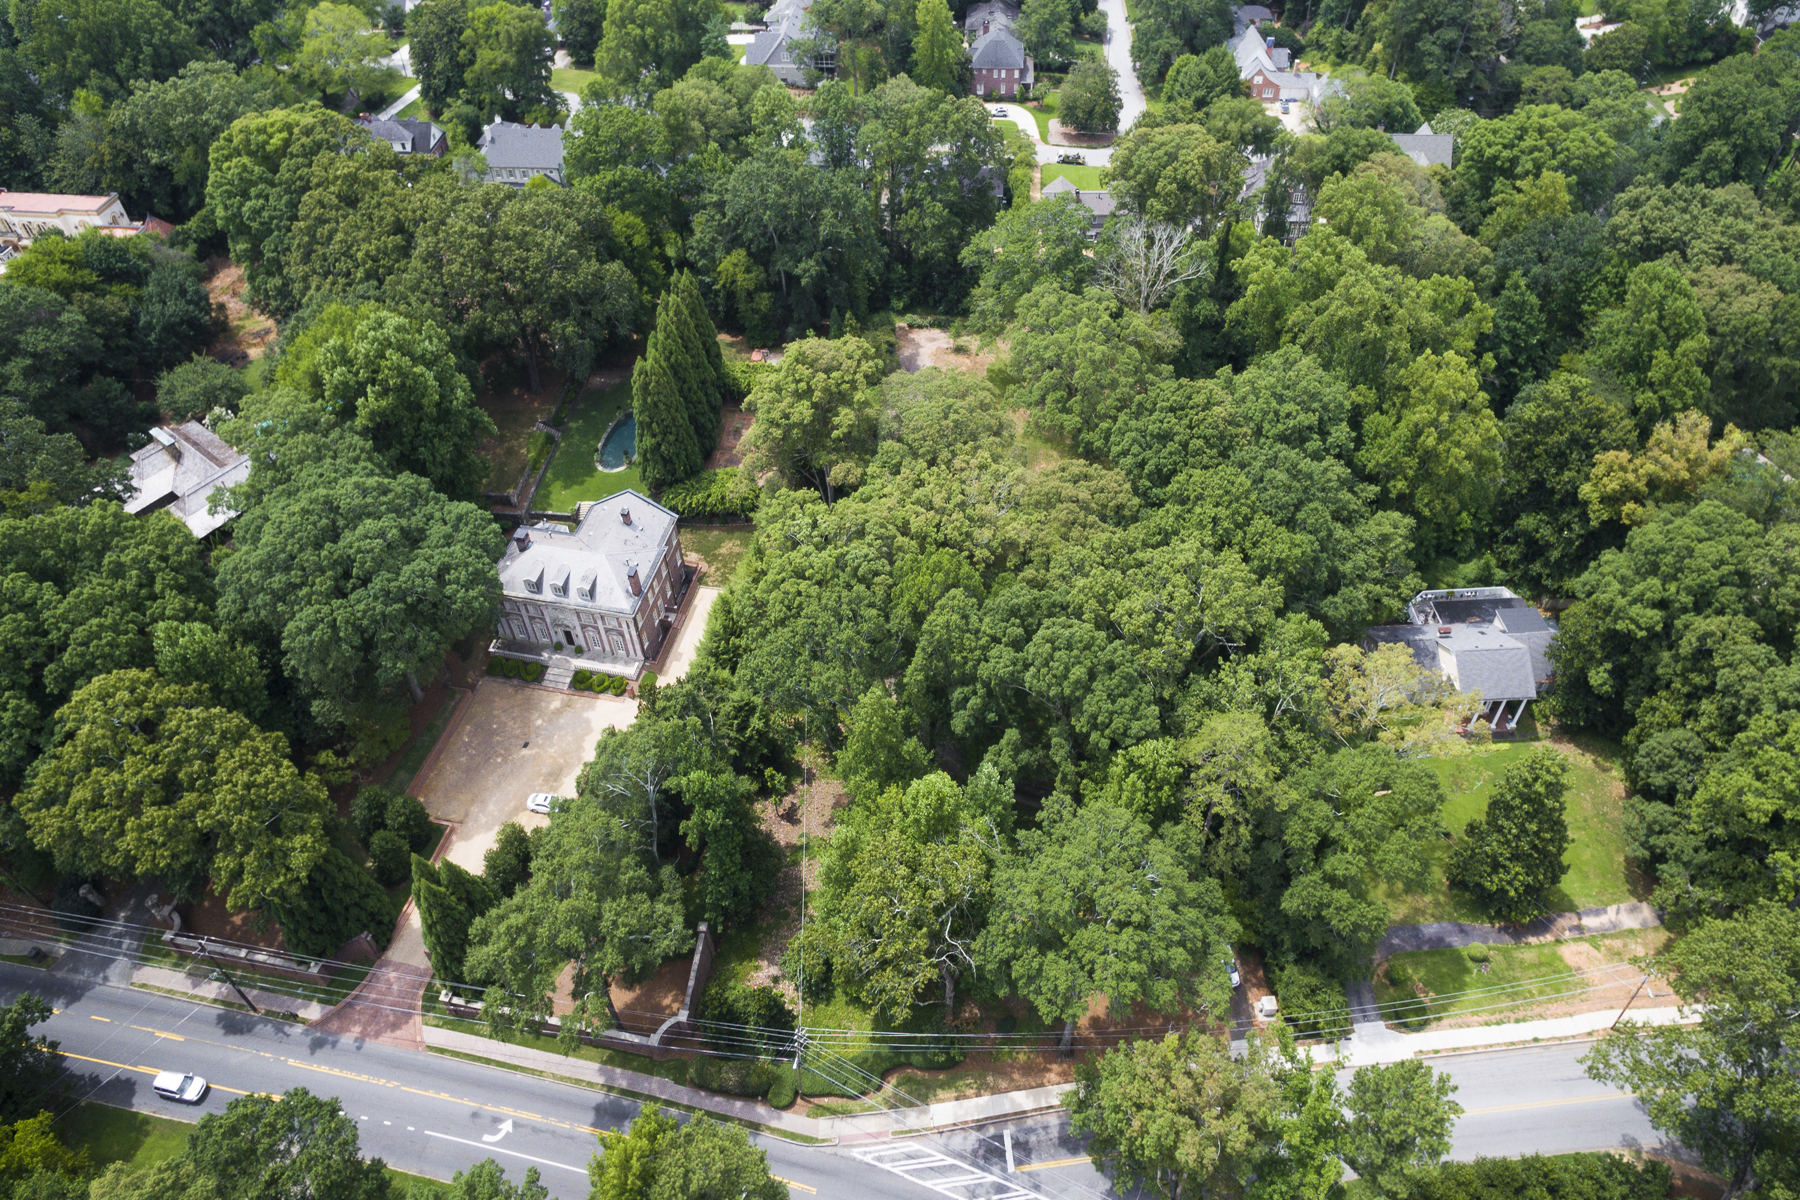 Terreno para Venda às Gorgeous 2+ Acre Lot On Atlanta's Prestigious West Paces Ferry Road 524 W Paces Ferry Road Buckhead, Atlanta, Geórgia, 30305 Estados Unidos